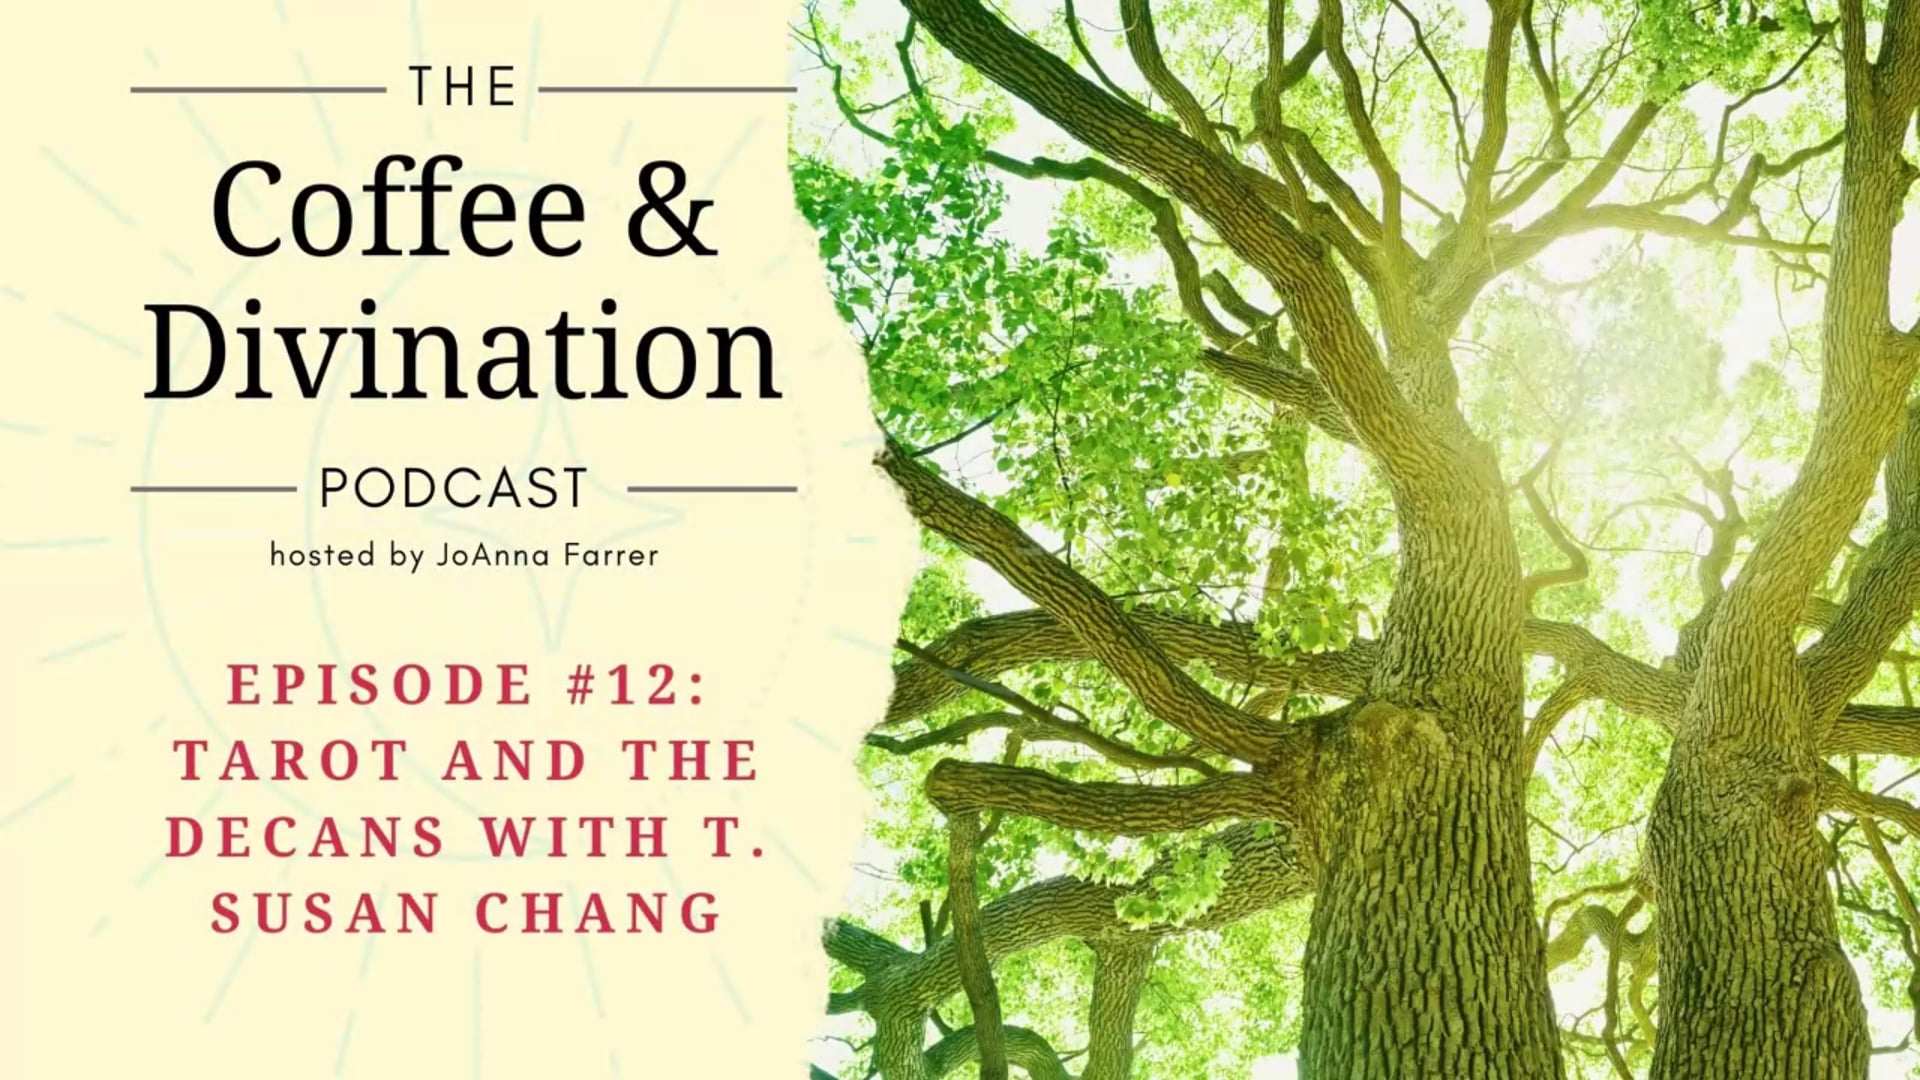 Coffee & Divination - Episode #12: Tarot and the Decans with T. Susan Chang